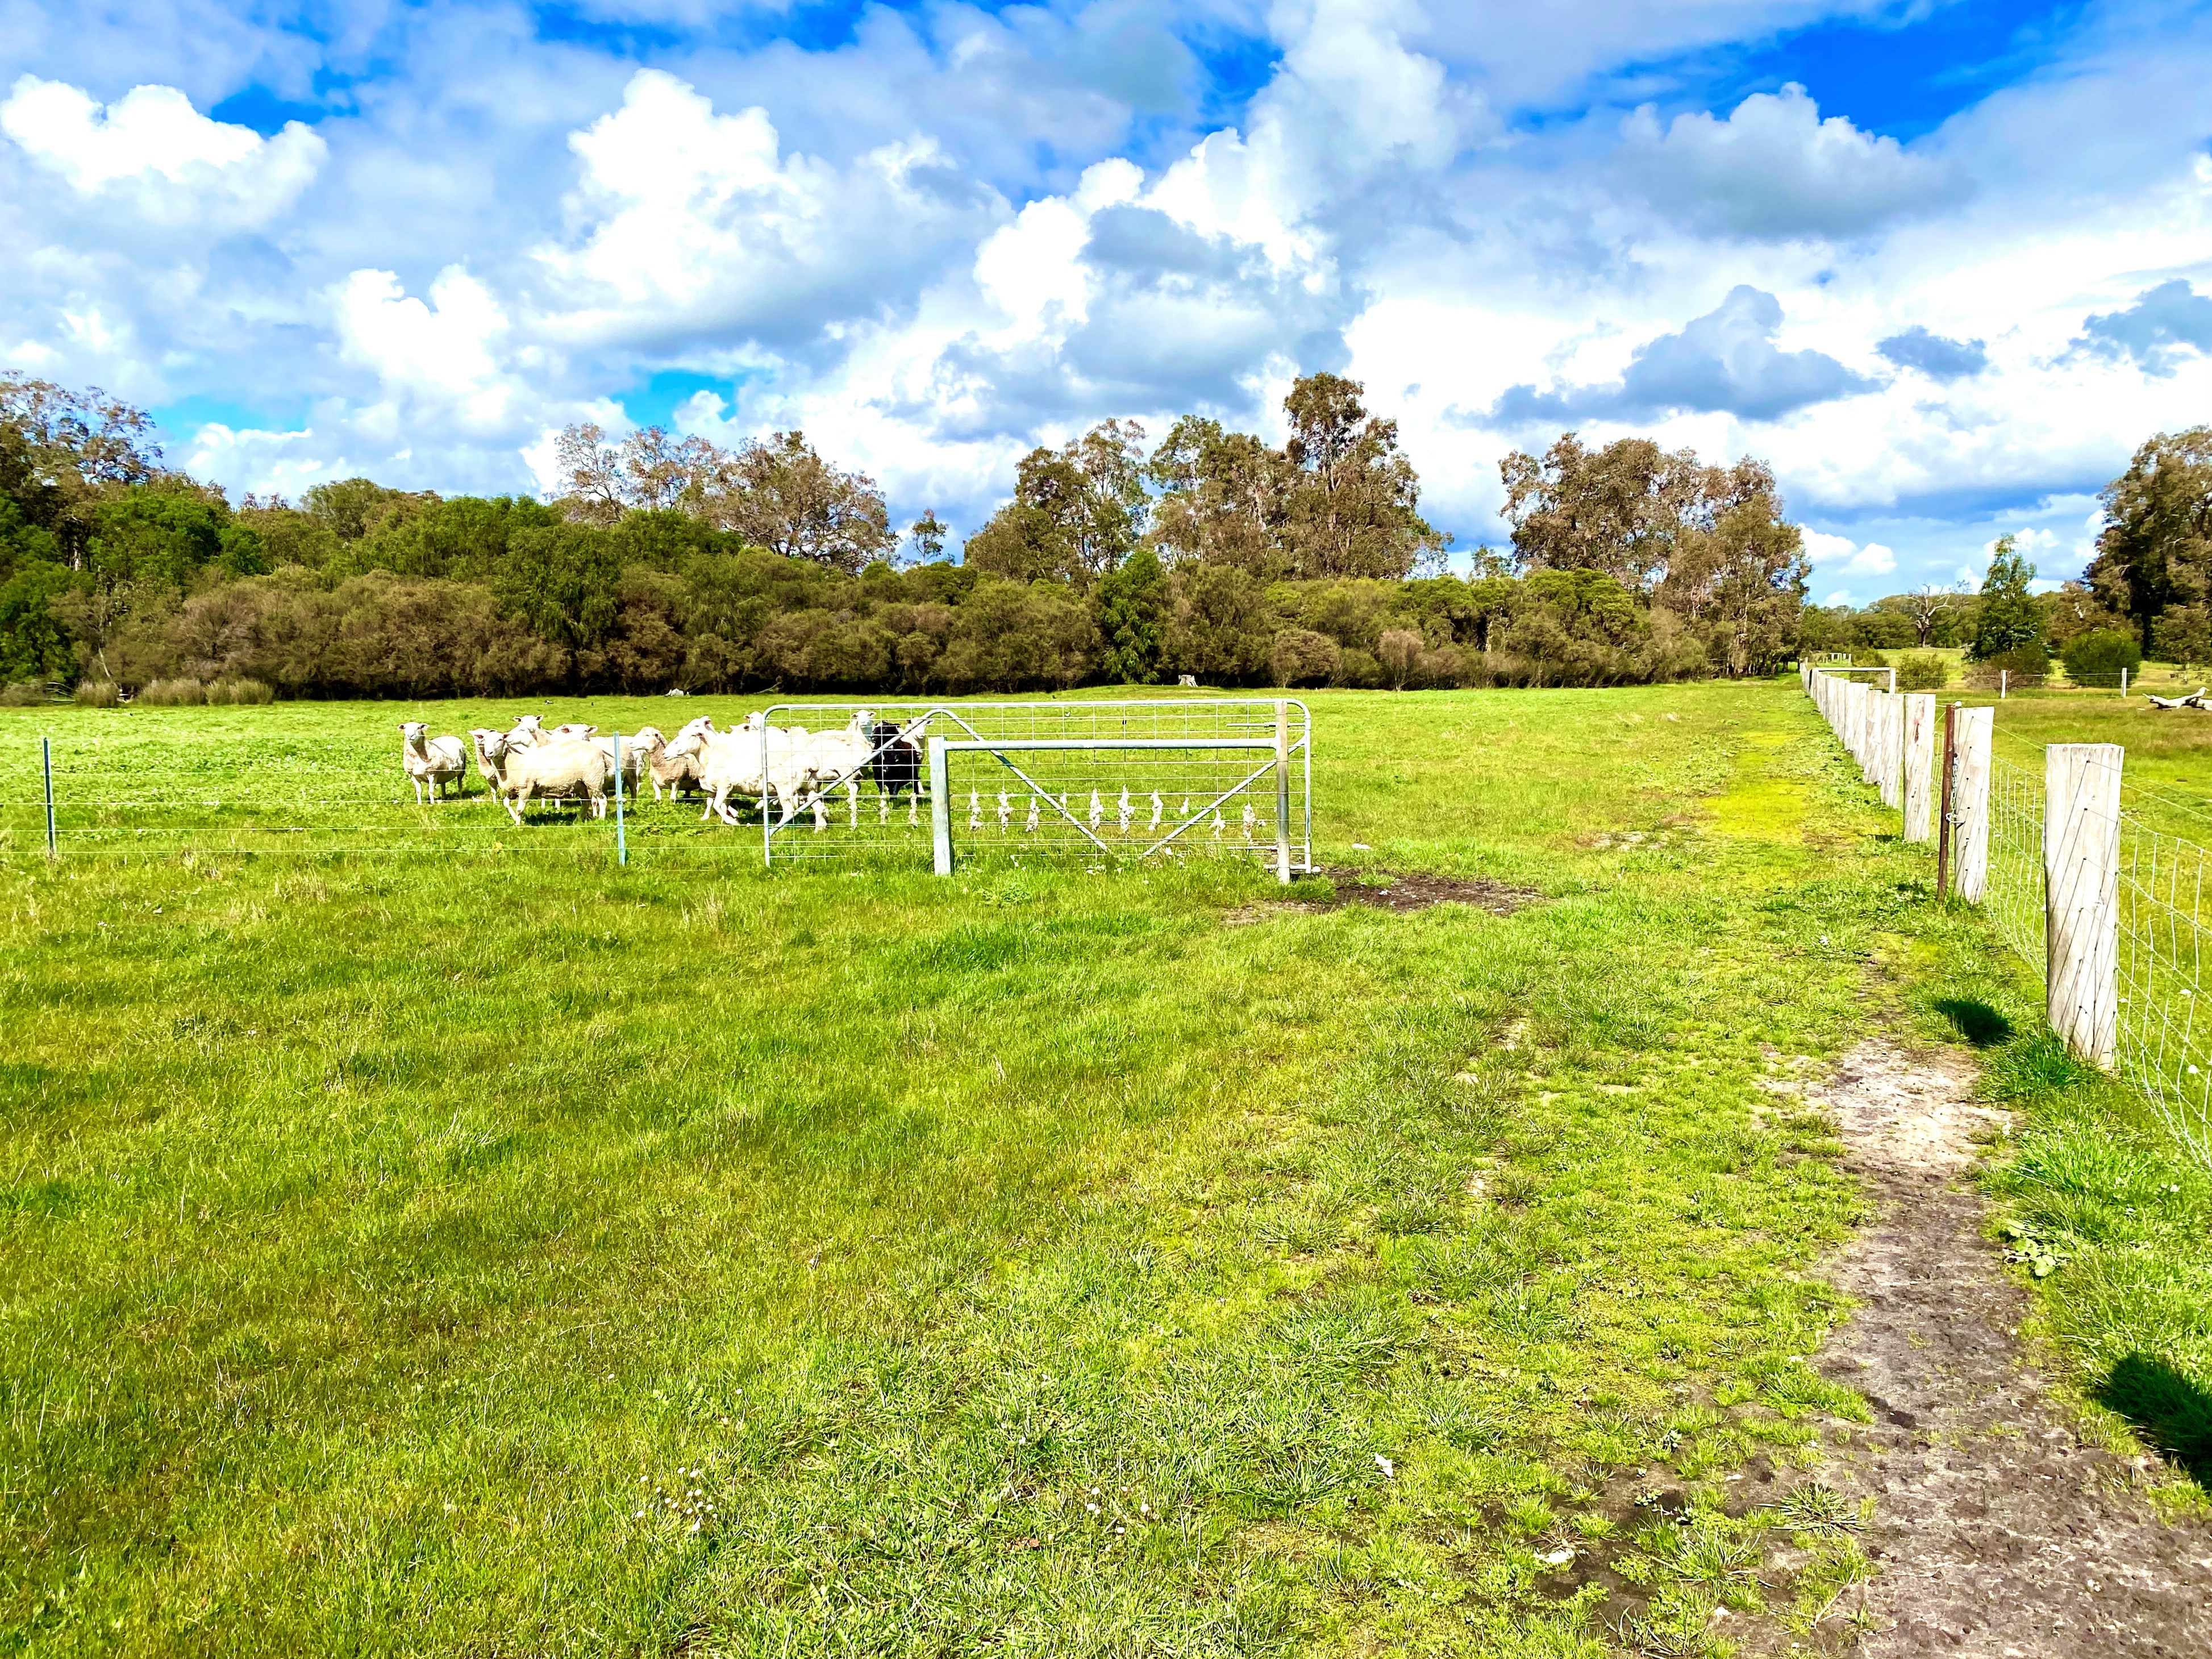 Lot 310 Holland Loop Crooked Brook - Cropping For Sale - 22503411 - ACTON South West (Bunbury)